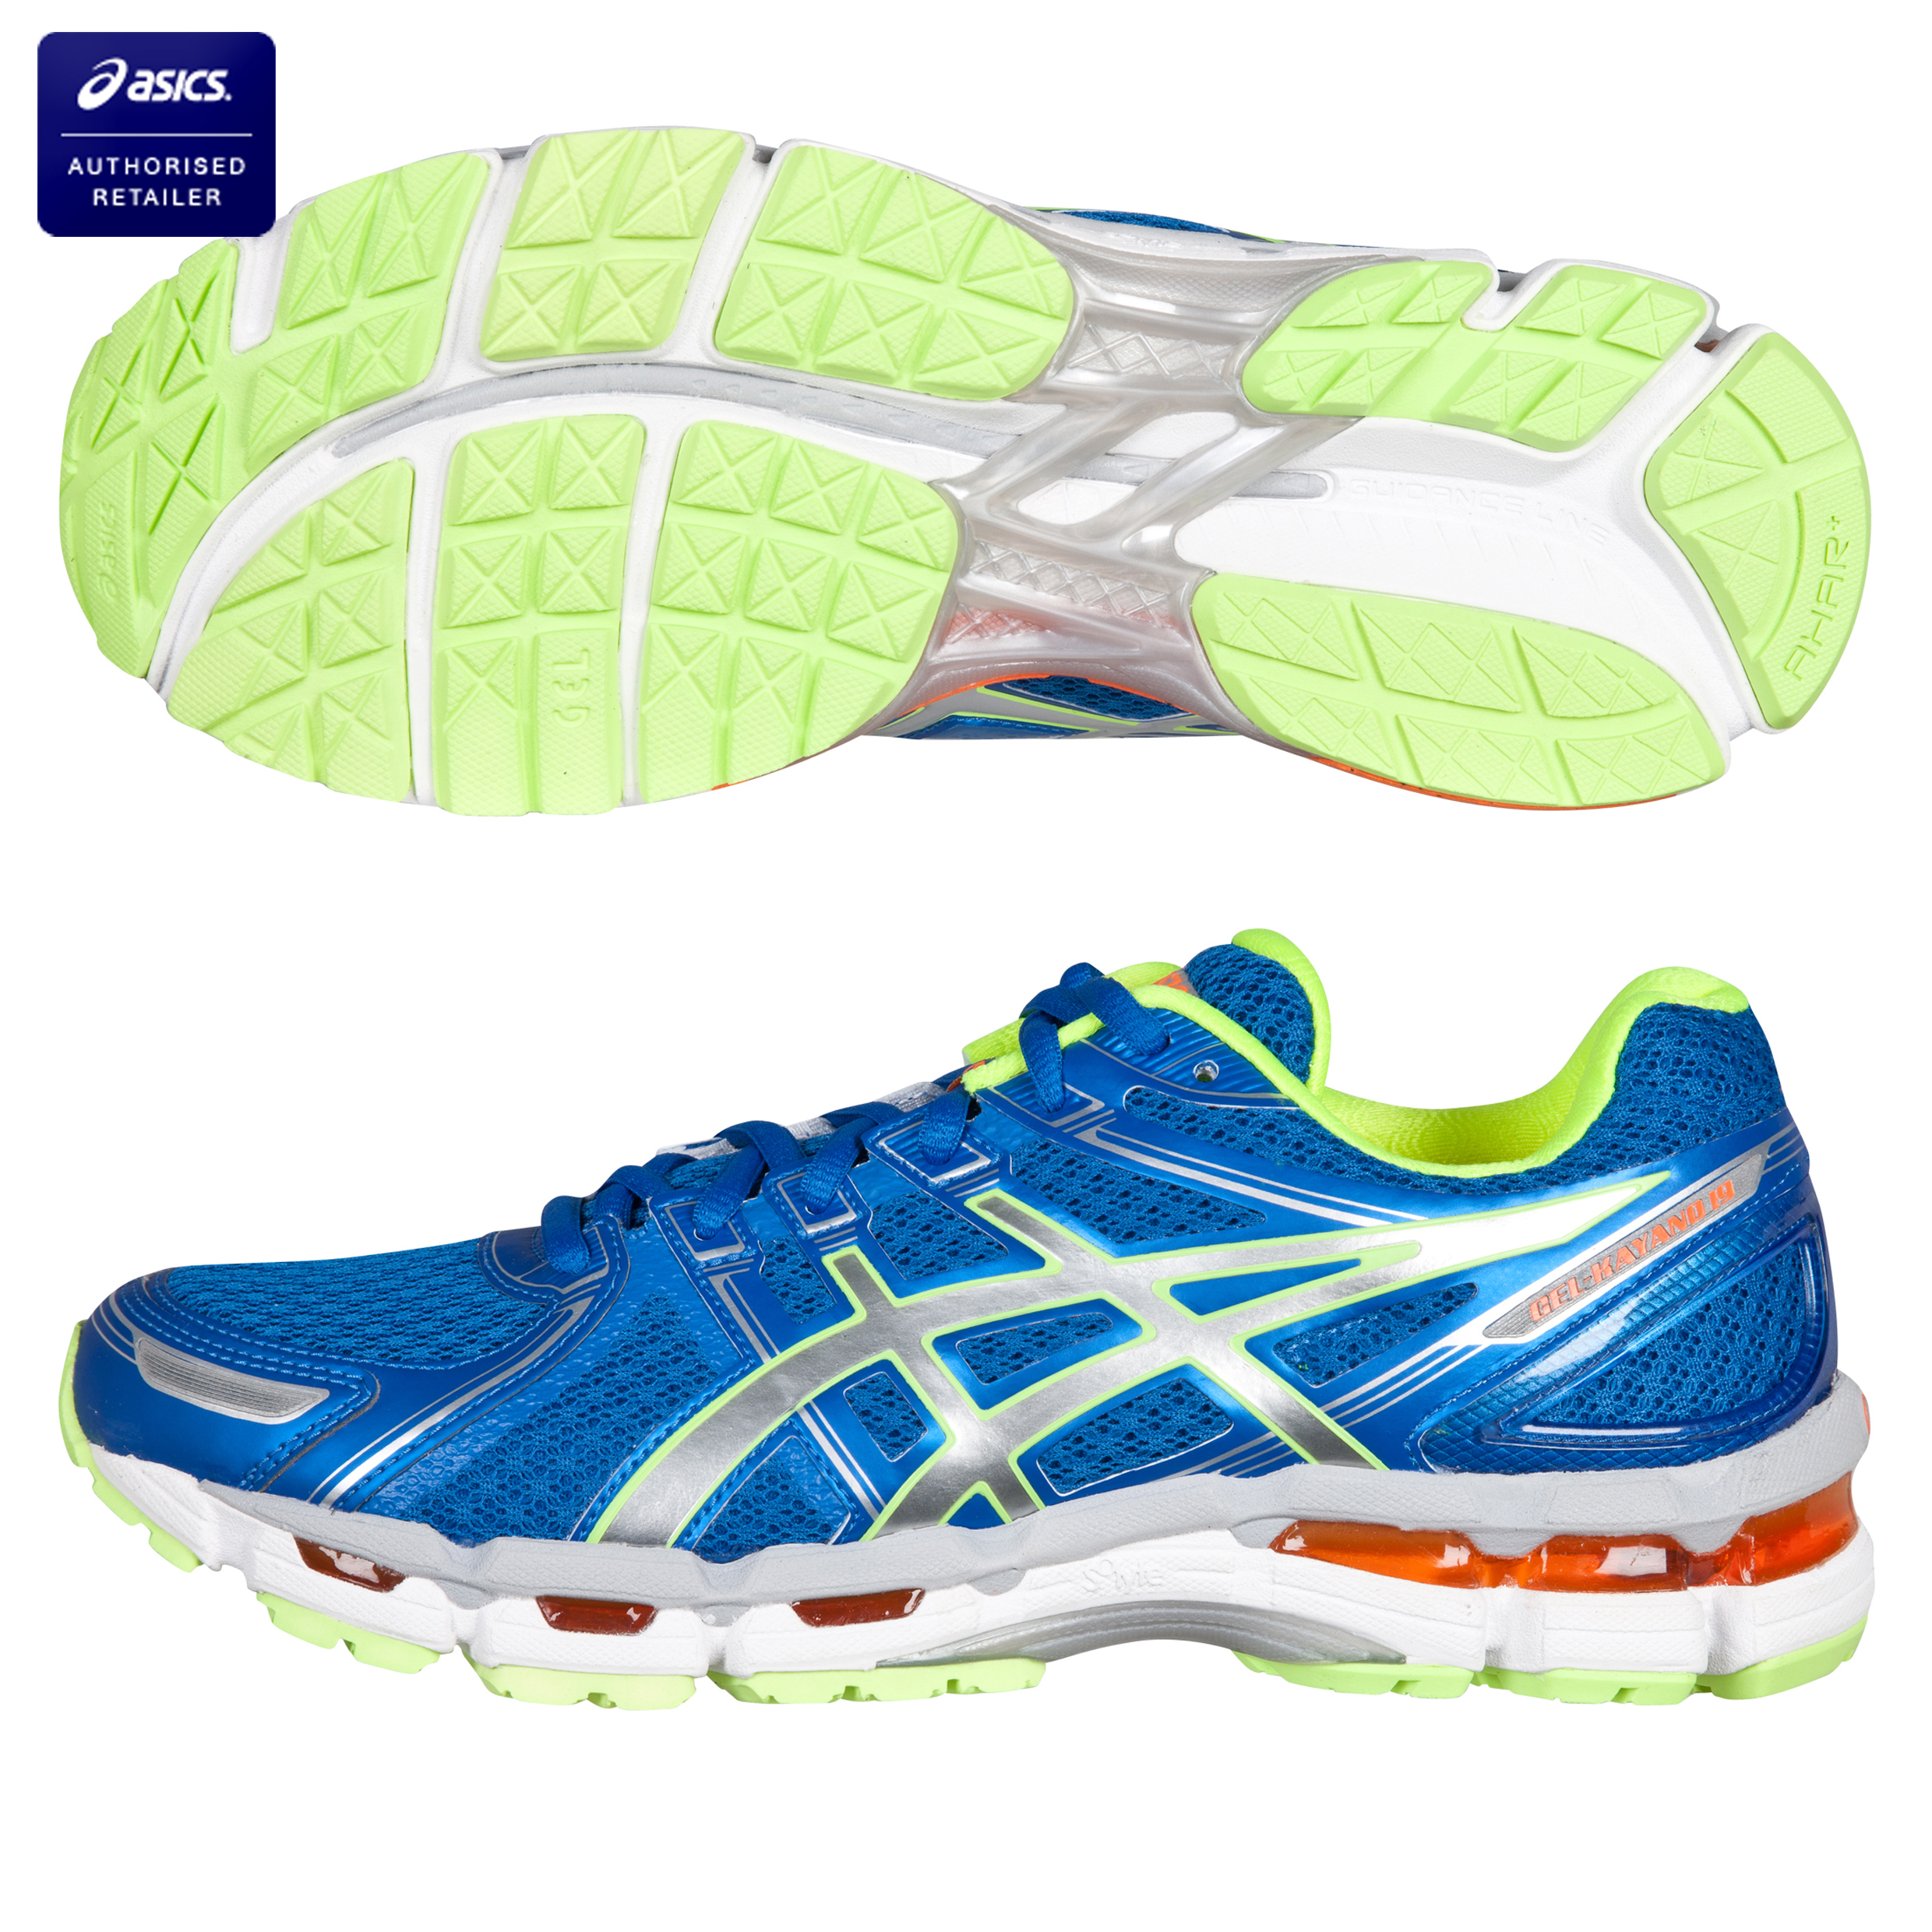 Asics Gel Kayano 19 Stability Trainers - Blue/White/Neon Yellow